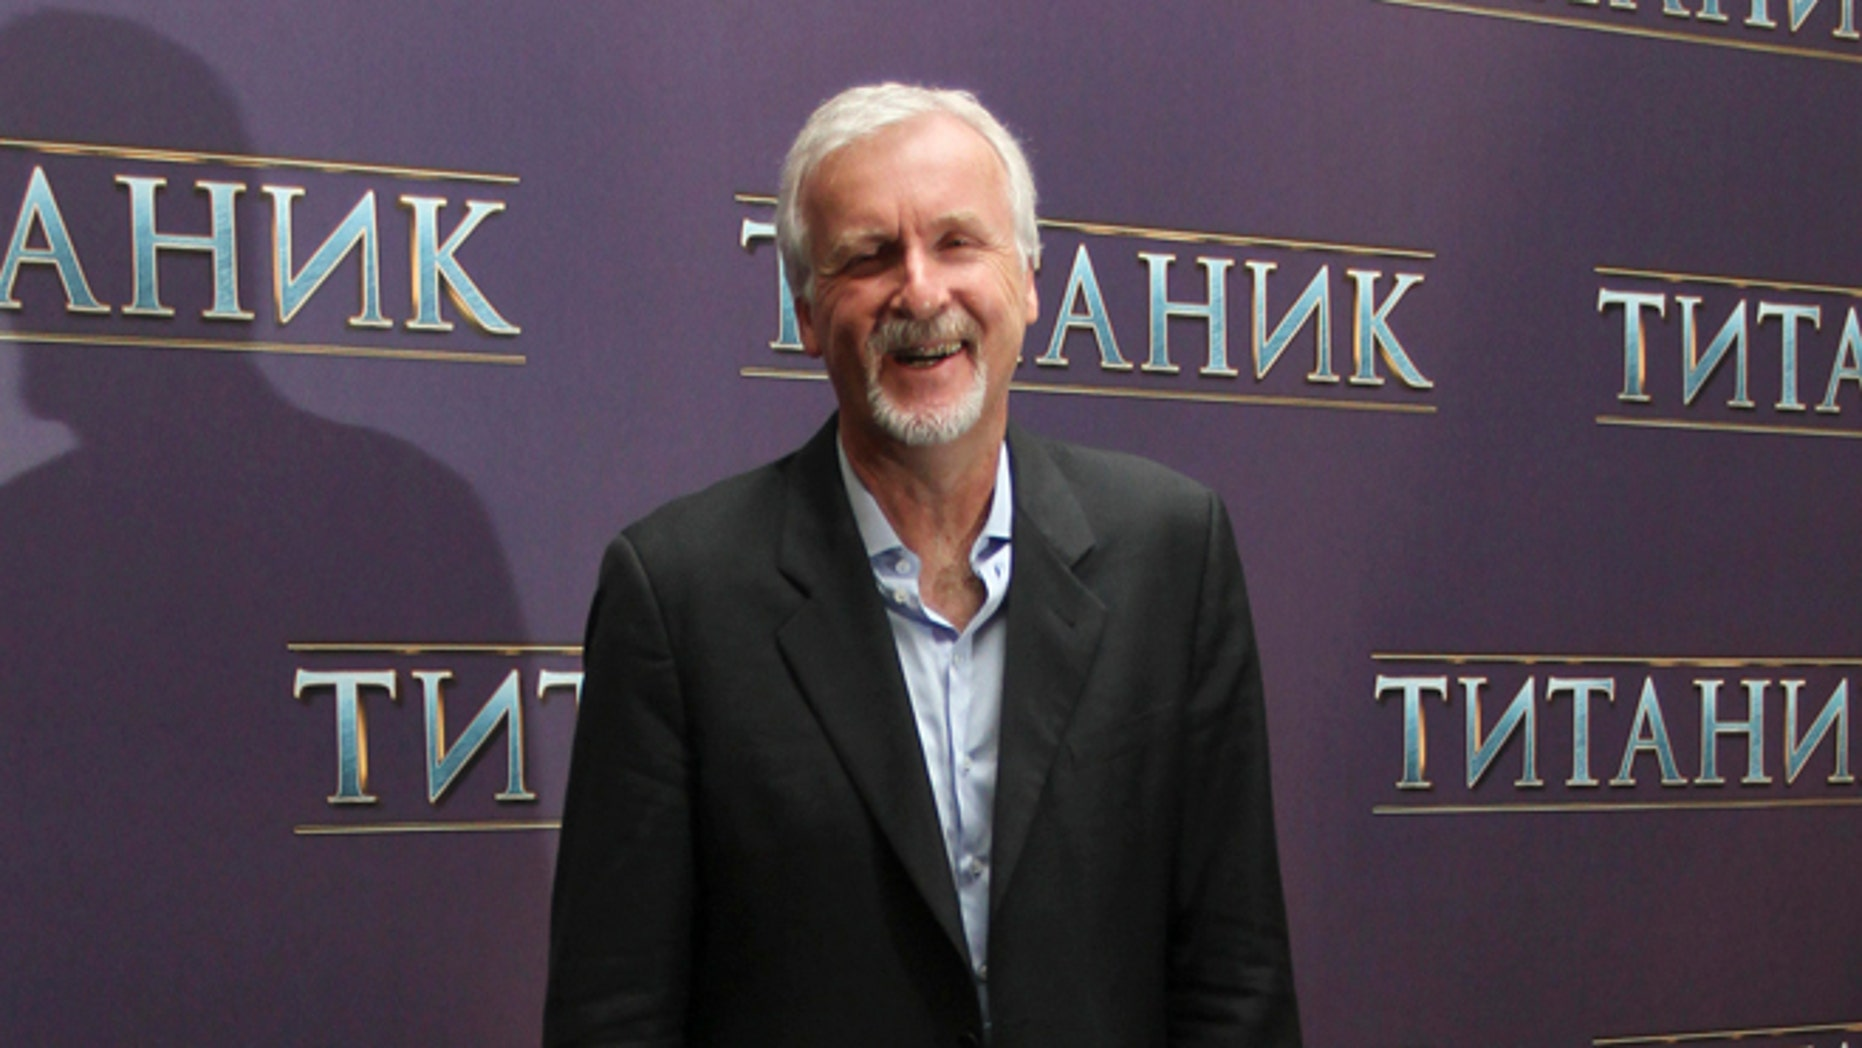 """U.S. film director James Cameron poses for a photograph during a presentation for the media in Moscow March 29, 2012. Cameron is visiting the Russian capital to promote his film """"Titanic 3D"""".  REUTERS/Ivan Burnyashev (RUSSIA - Tags: ENTERTAINMENT)"""